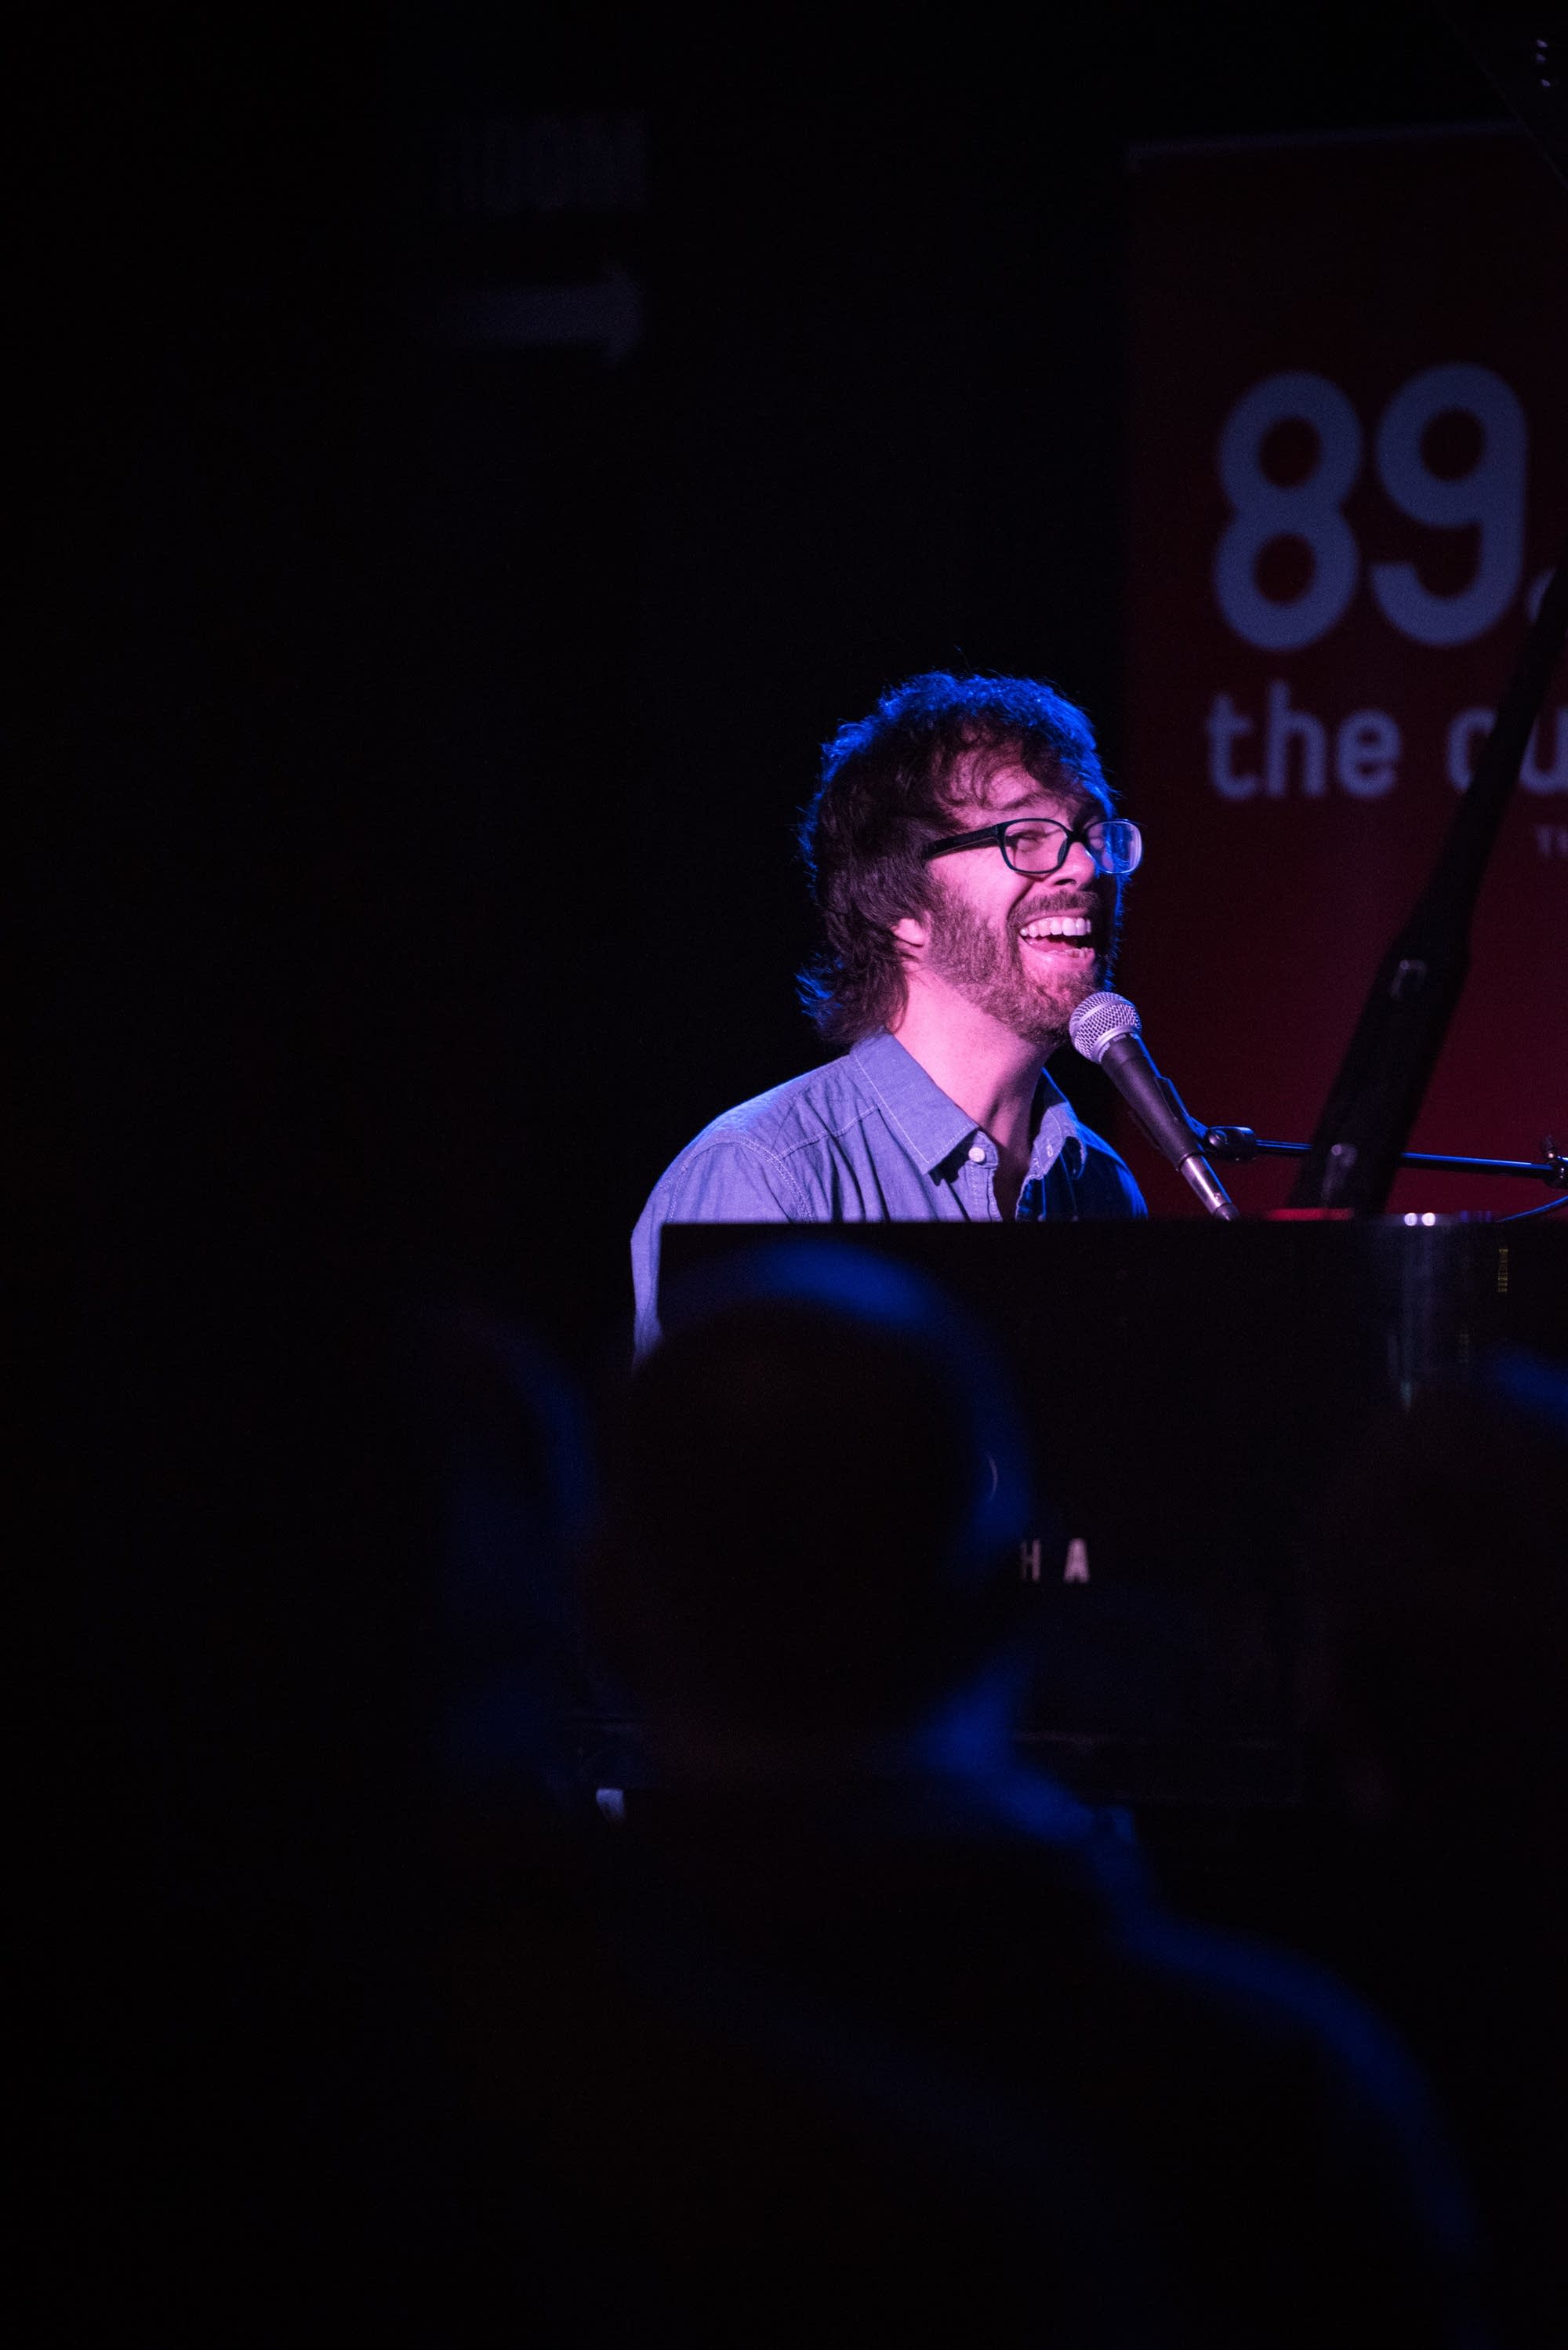 Ben Folds at the Turf Club - 7